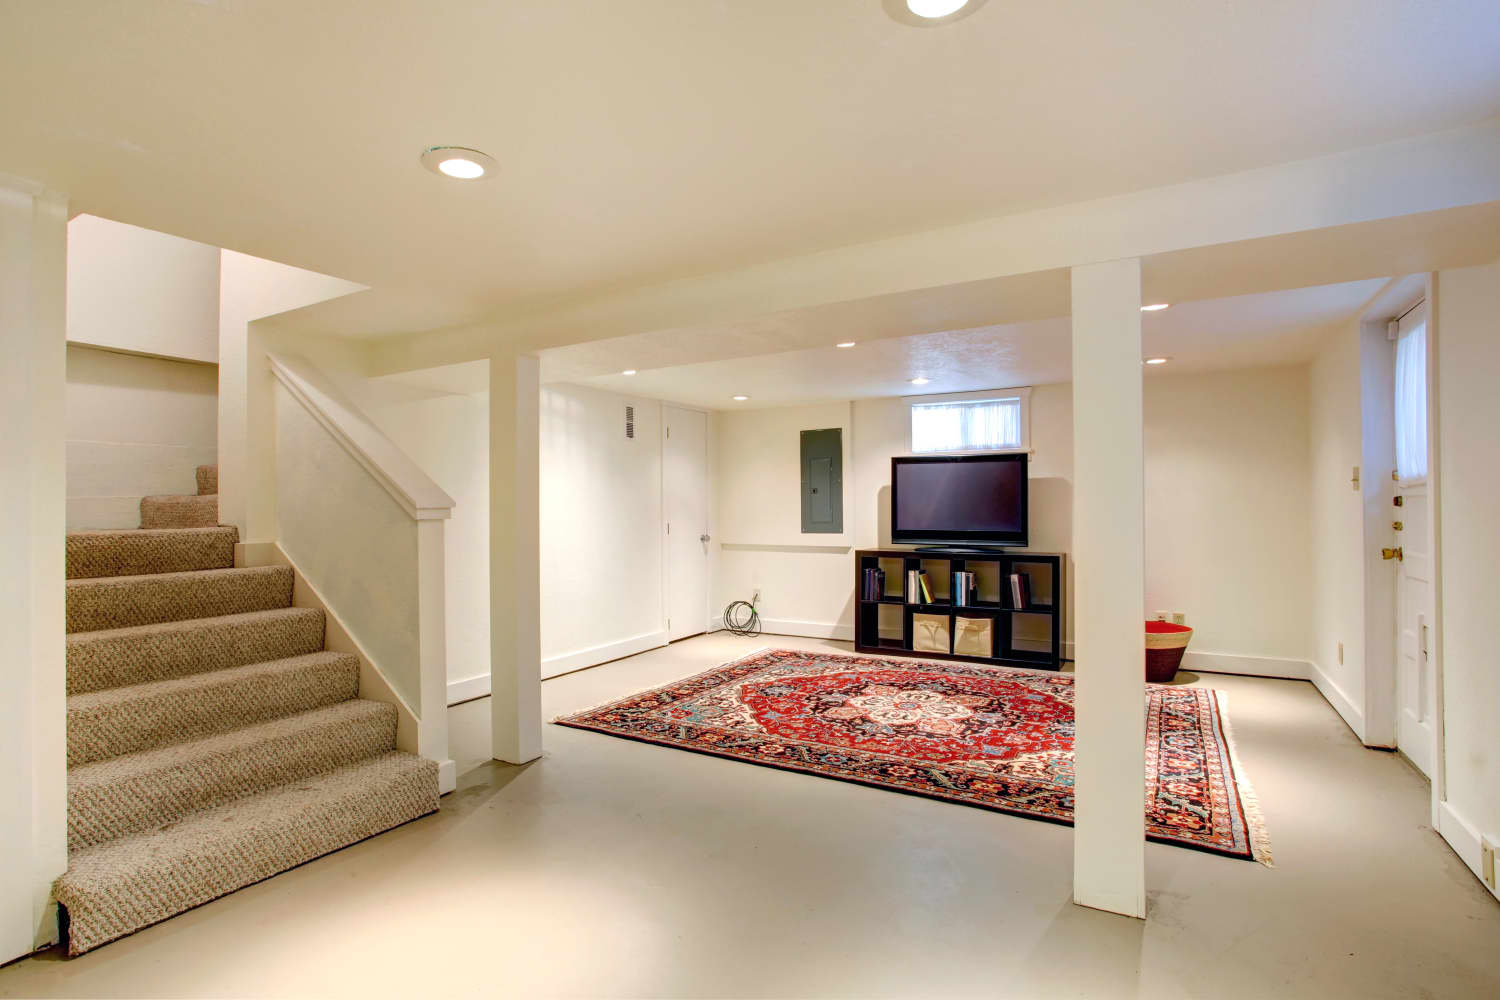 6 Basement Trends That'll Make Your Home Look Dated, According to Real Estate Experts